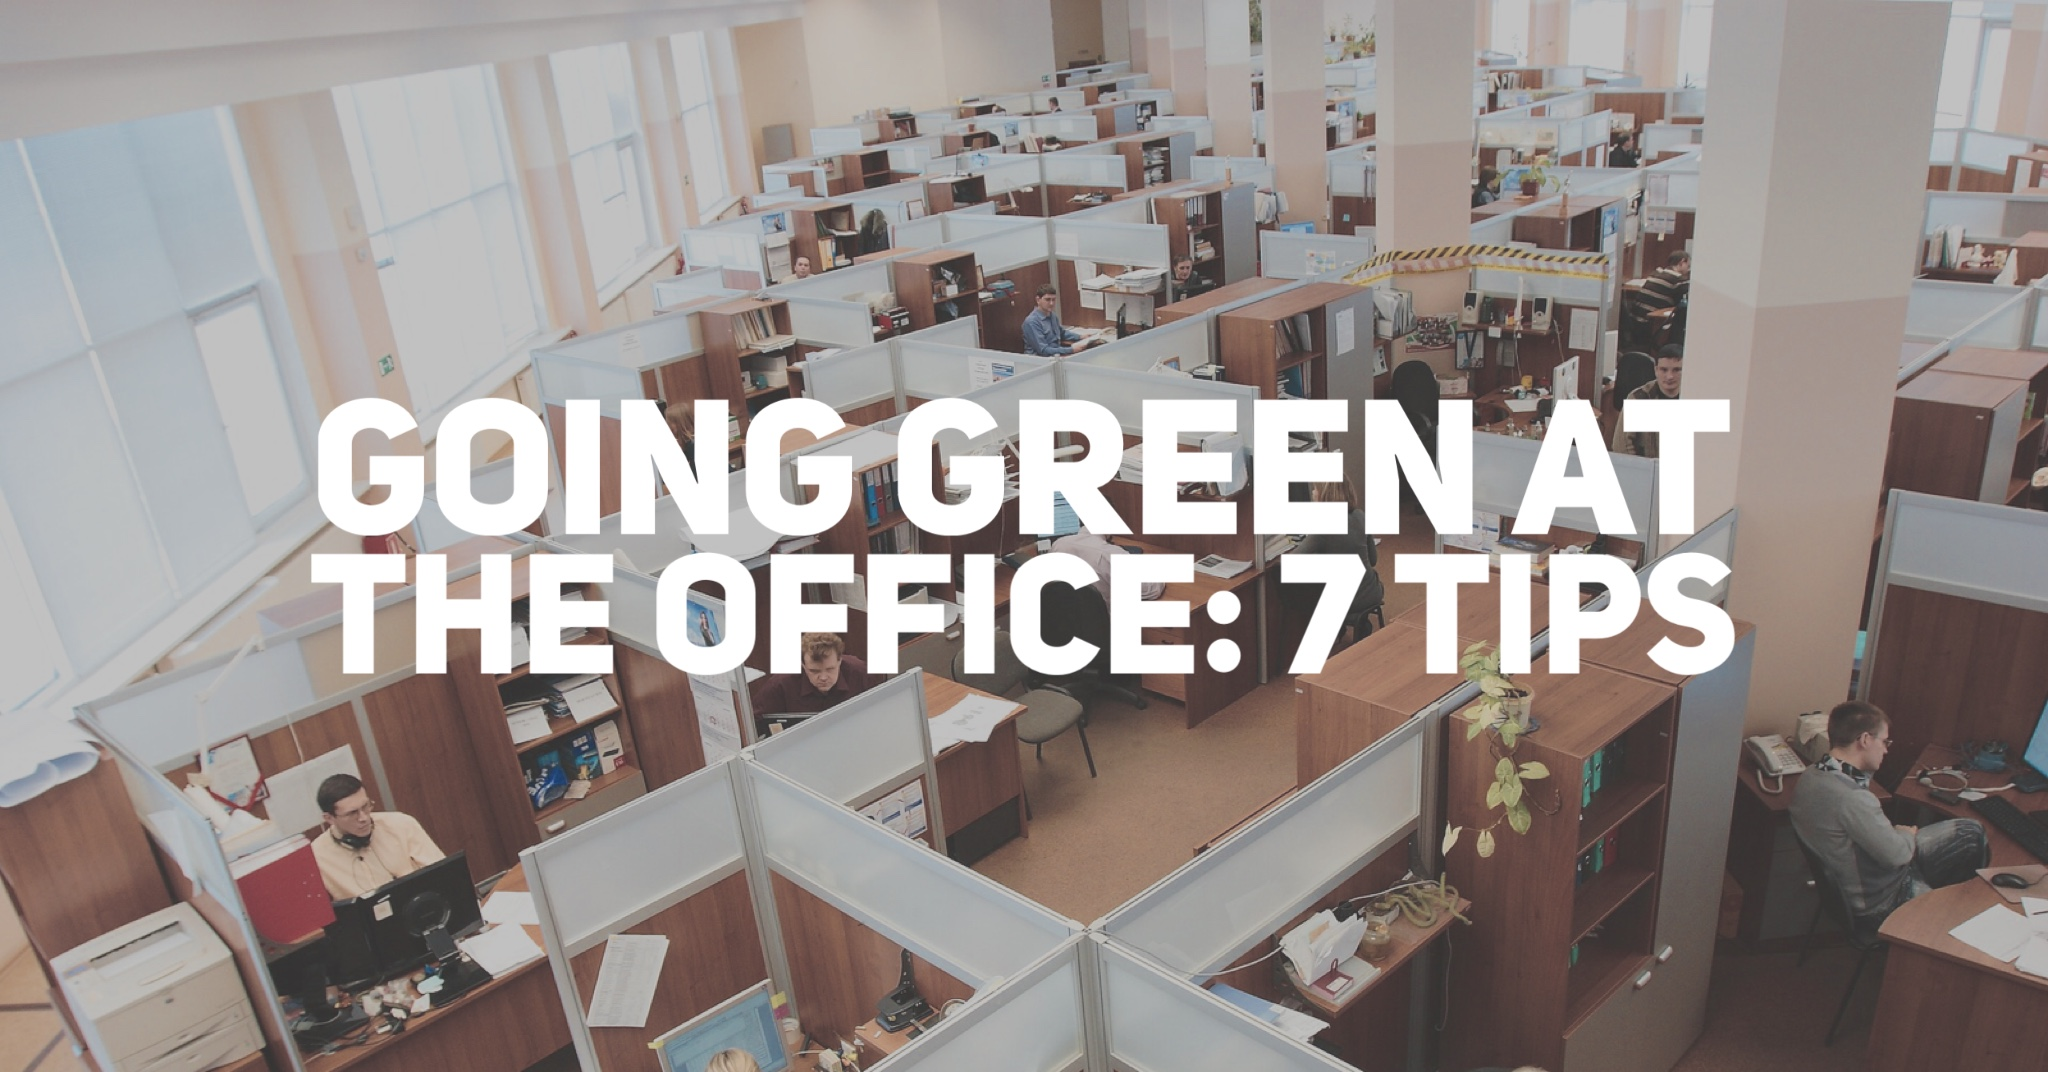 Going Green at the Office: 7 Tips